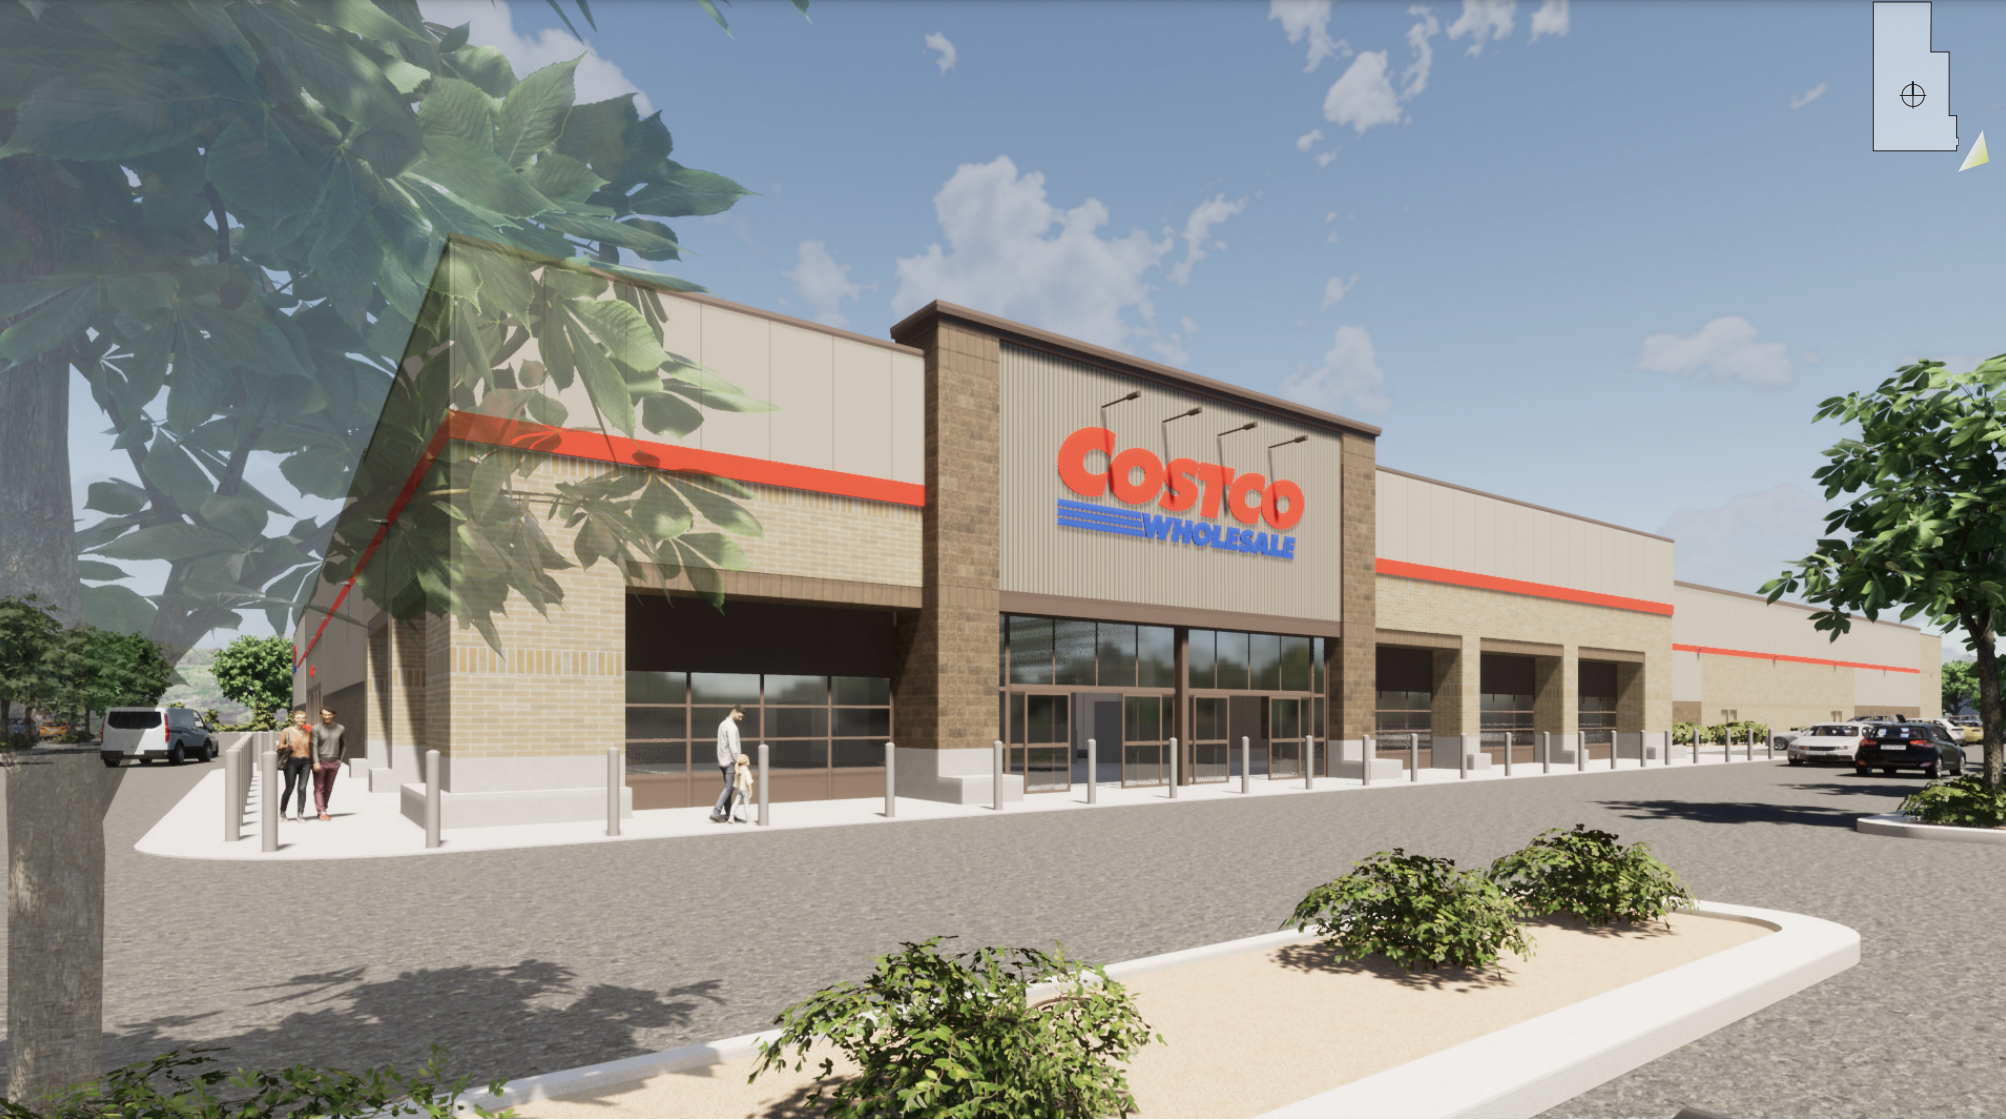 rendering of a costco storefront